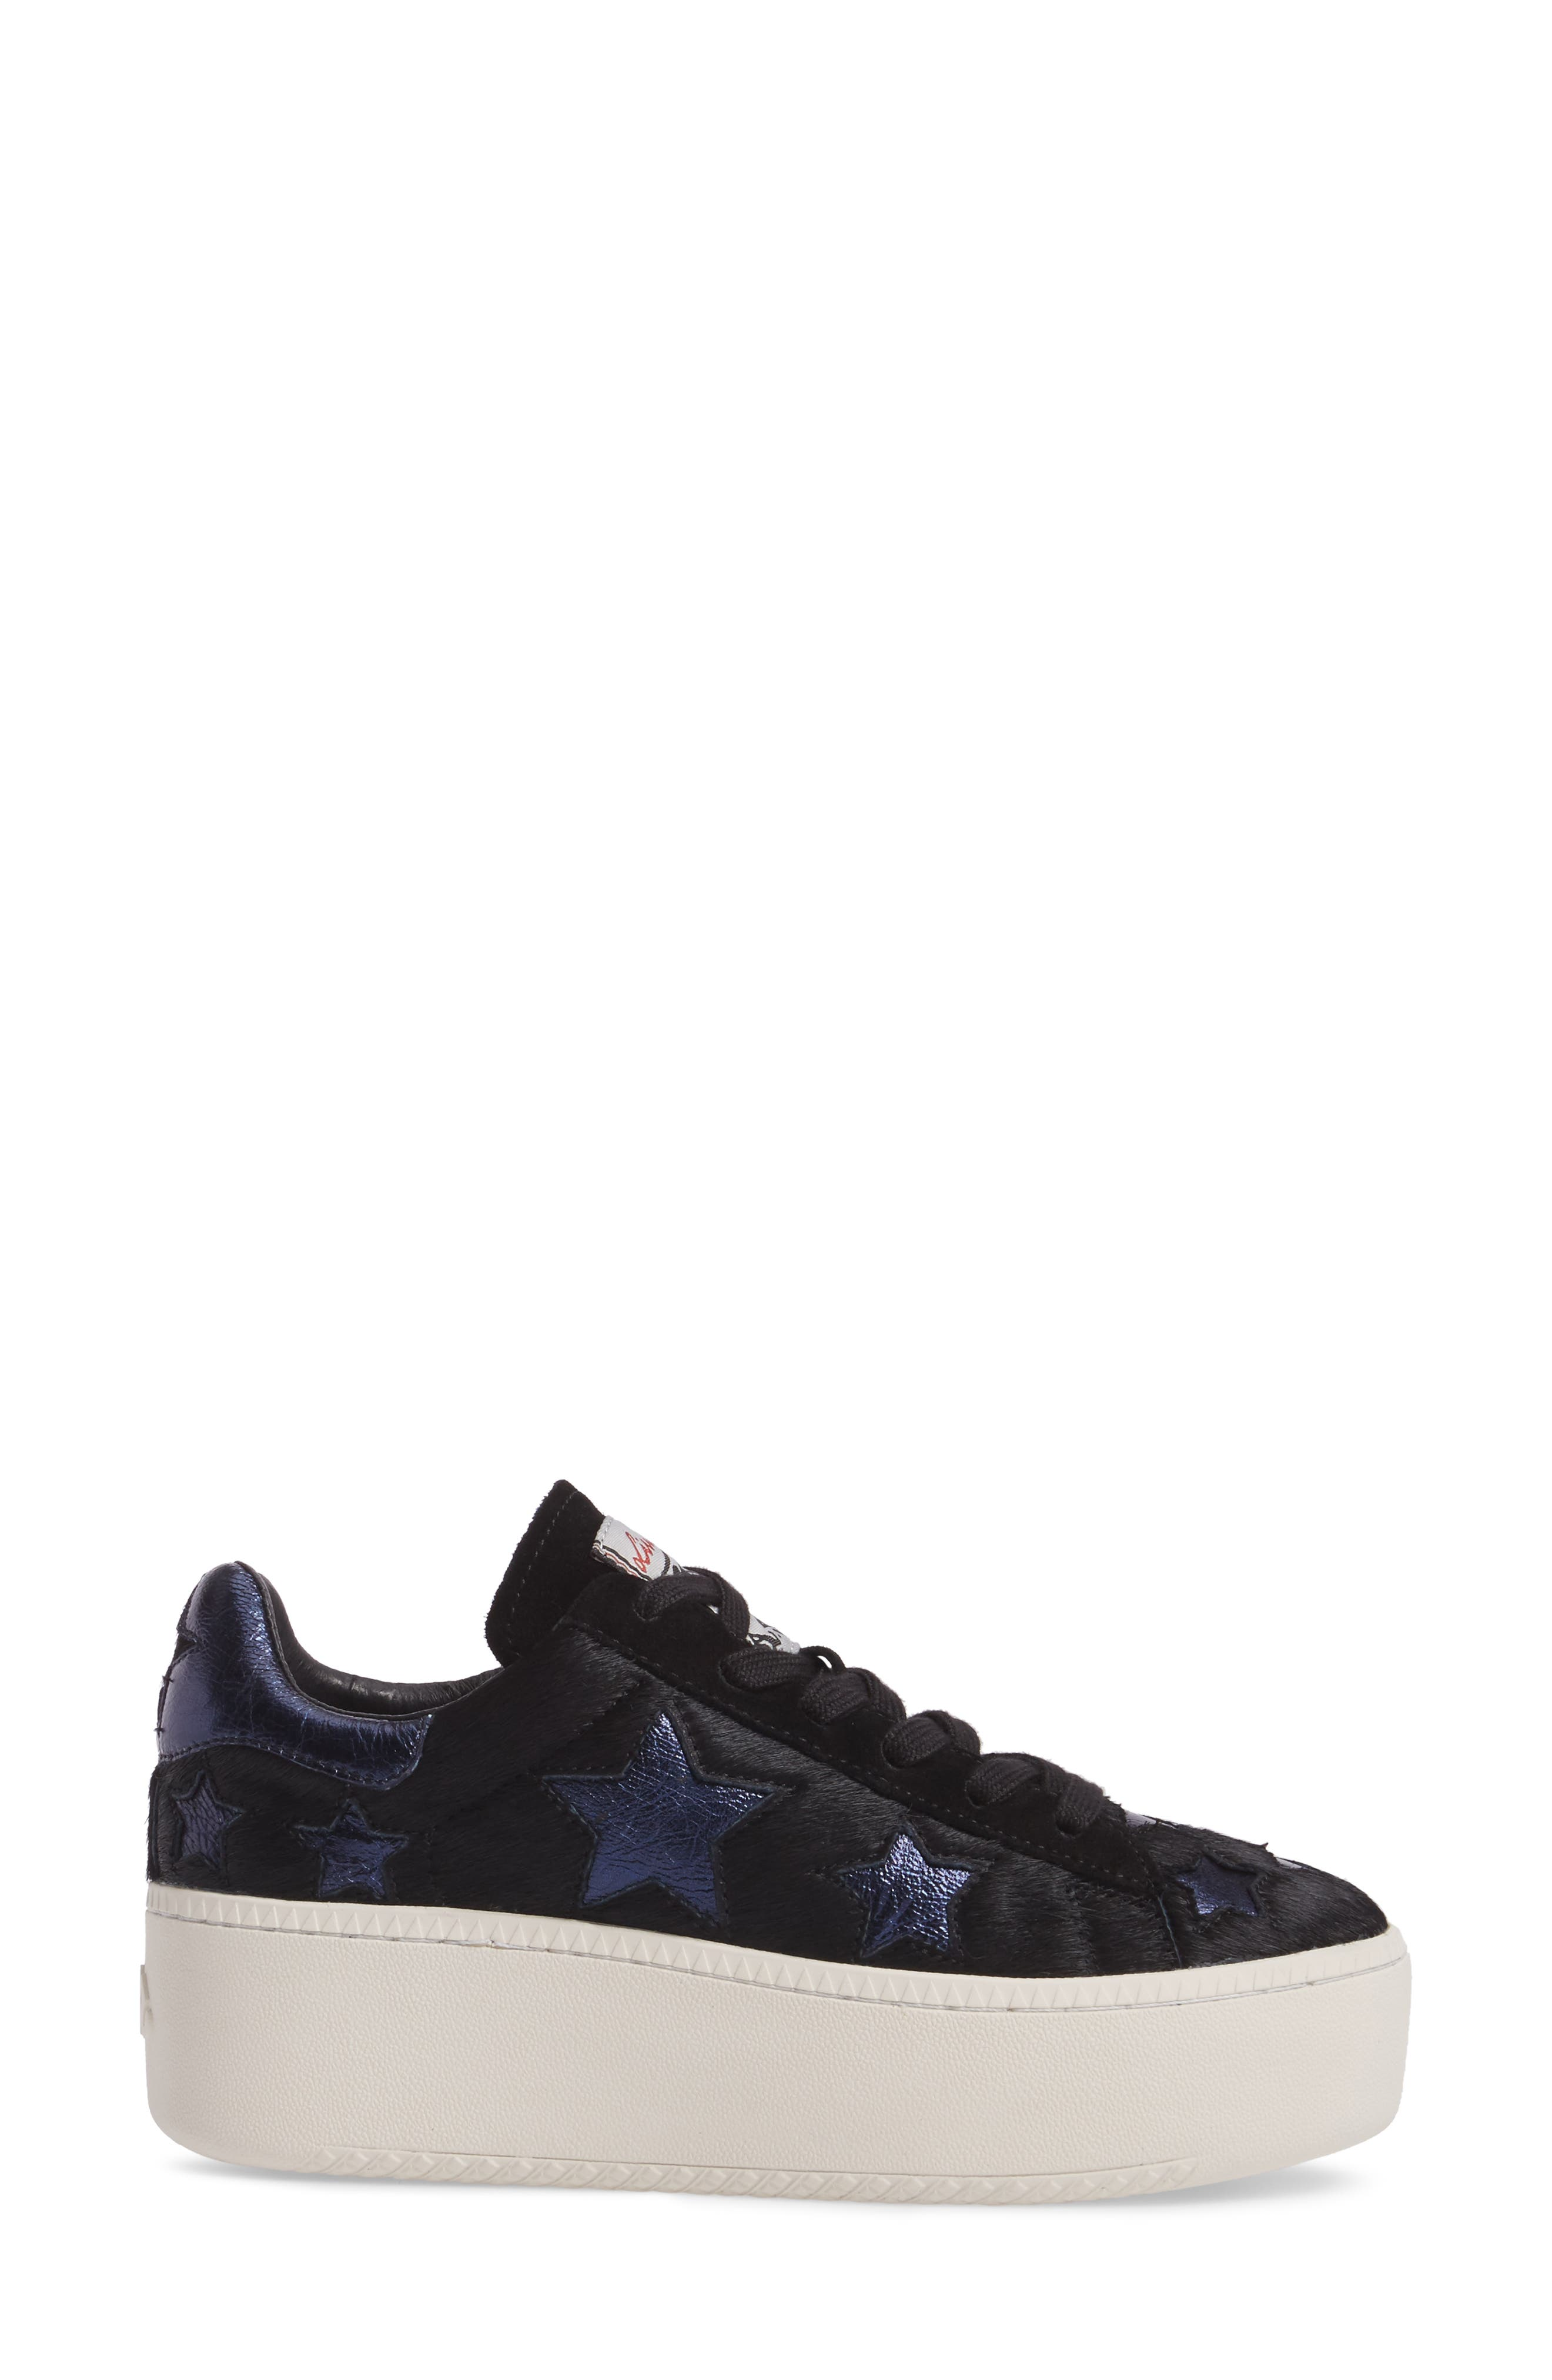 Cult Star Calf Hair Sneaker,                             Alternate thumbnail 3, color,                             Black/ Midnight Leather